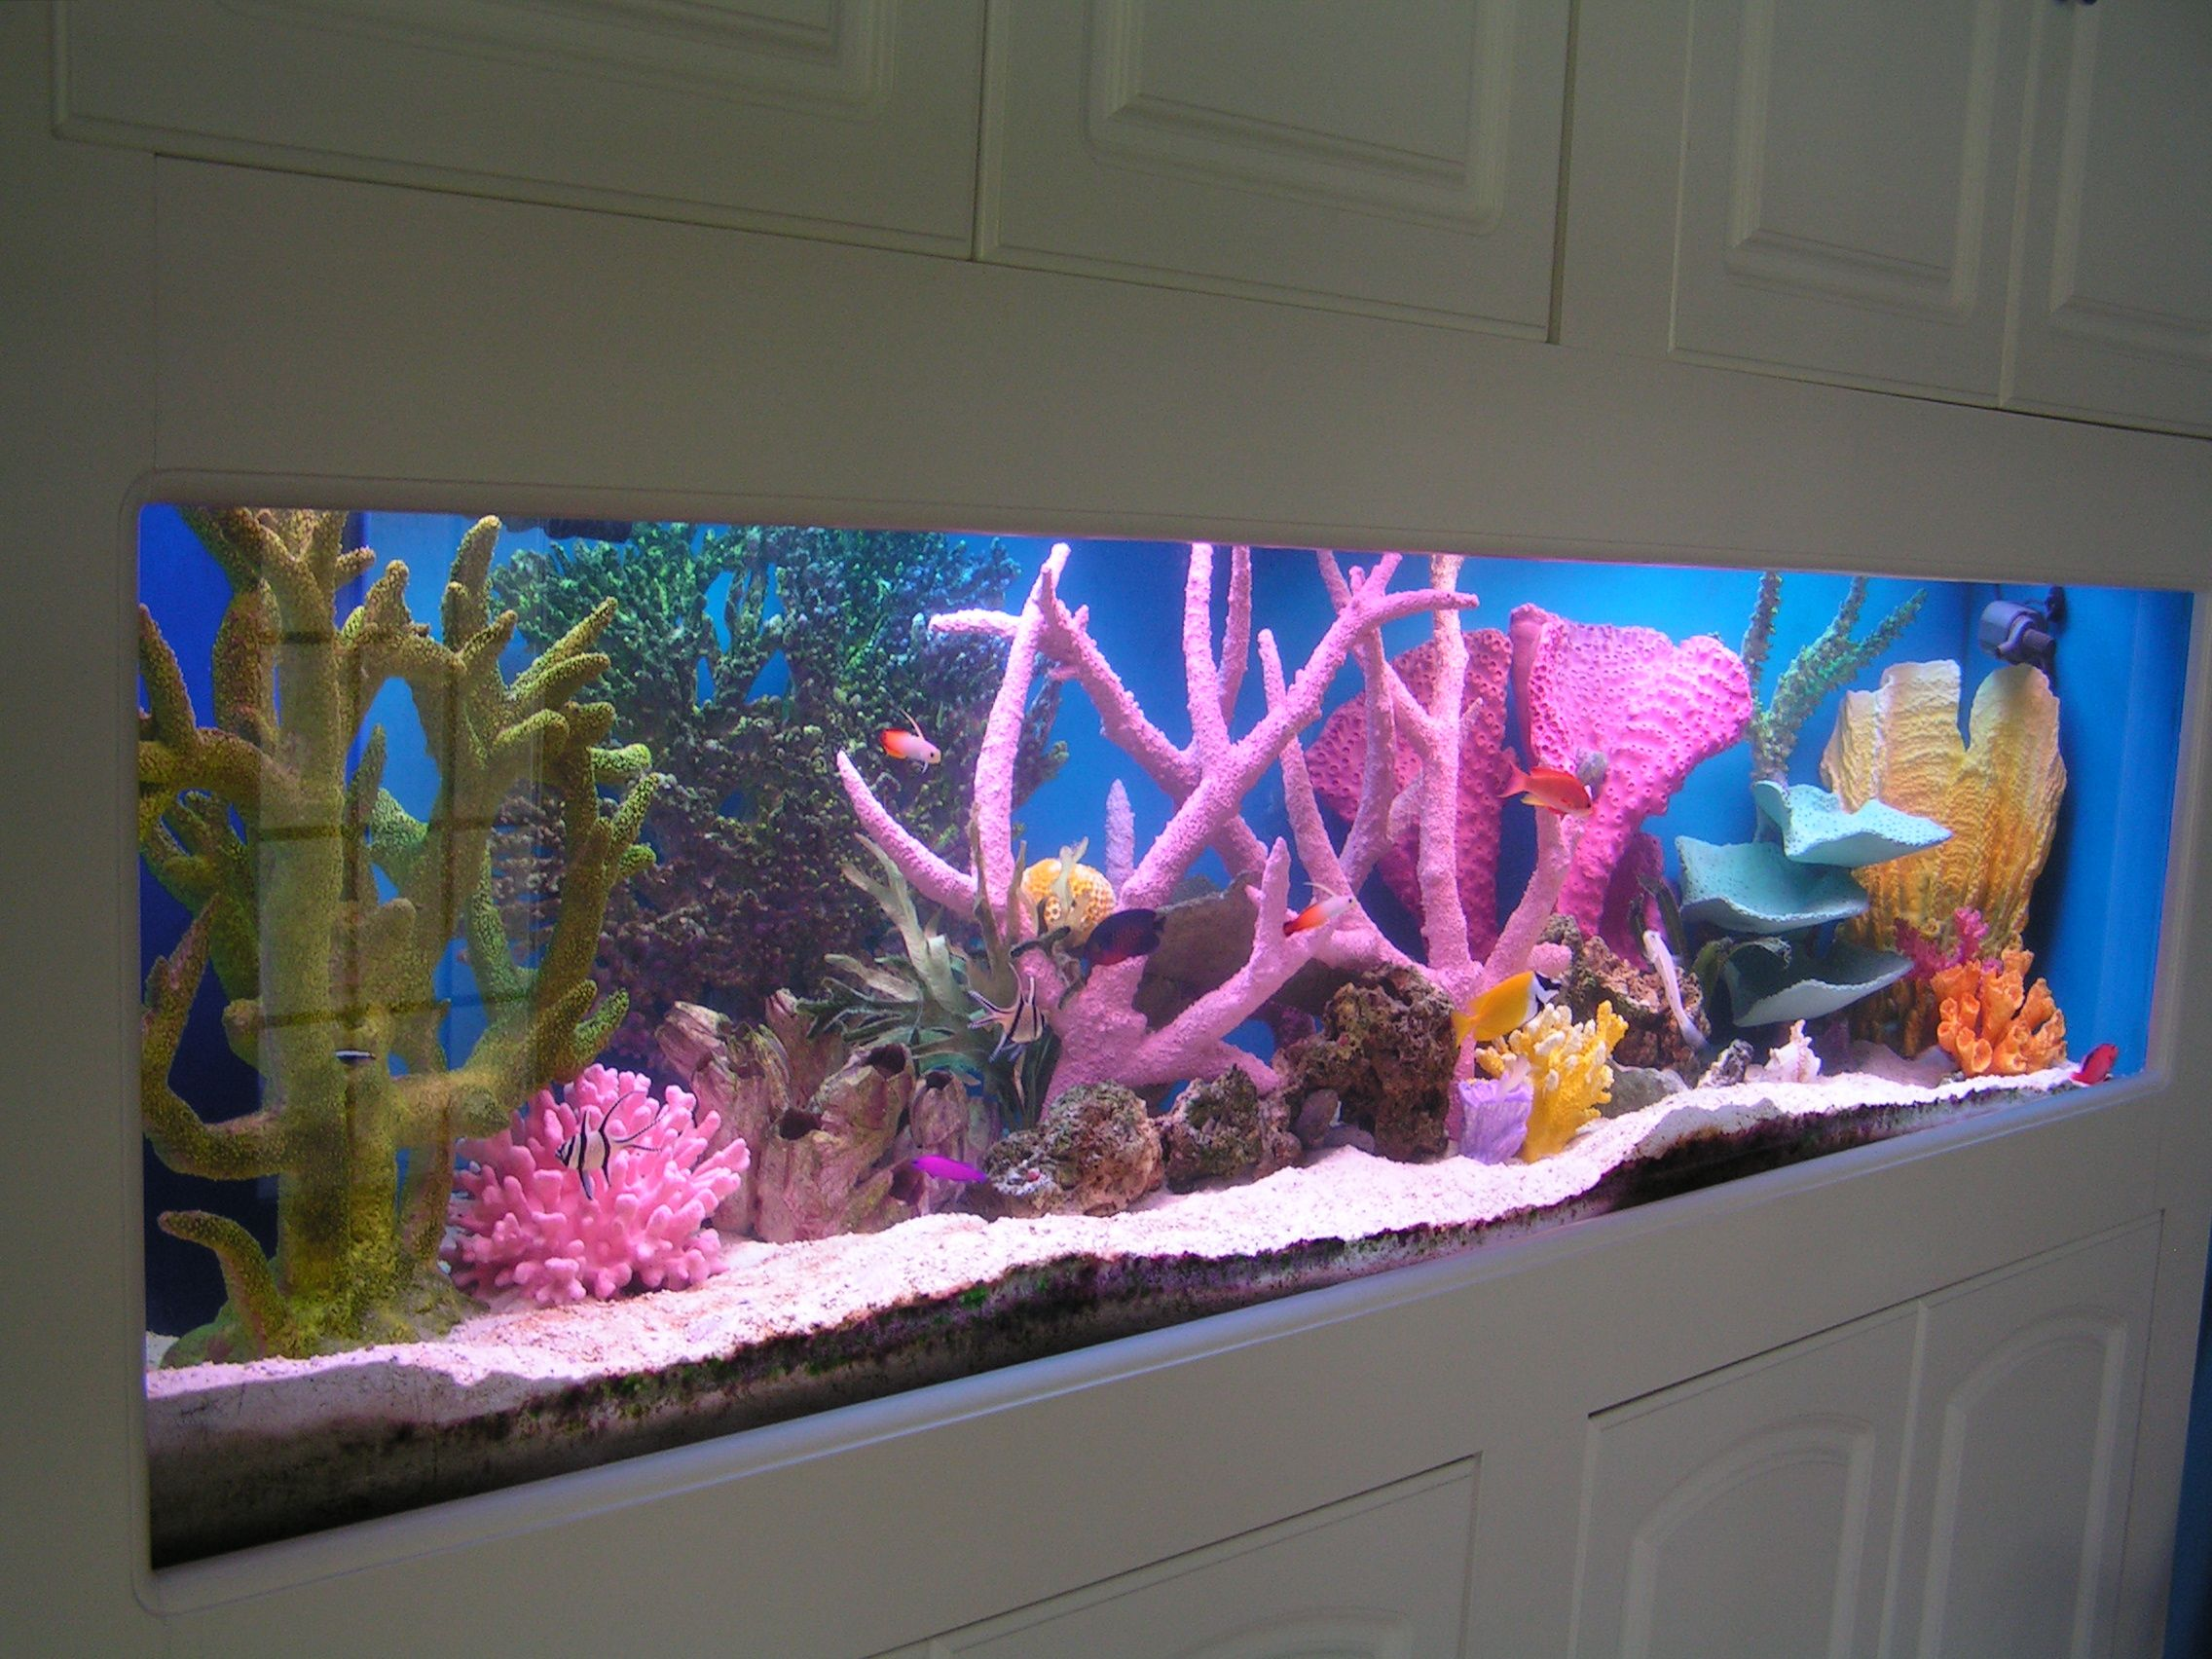 Small aquarium fish tanks - Marine Fish Tanks Anyone With Saltwater Fish Tank The Hull Truth Boating And